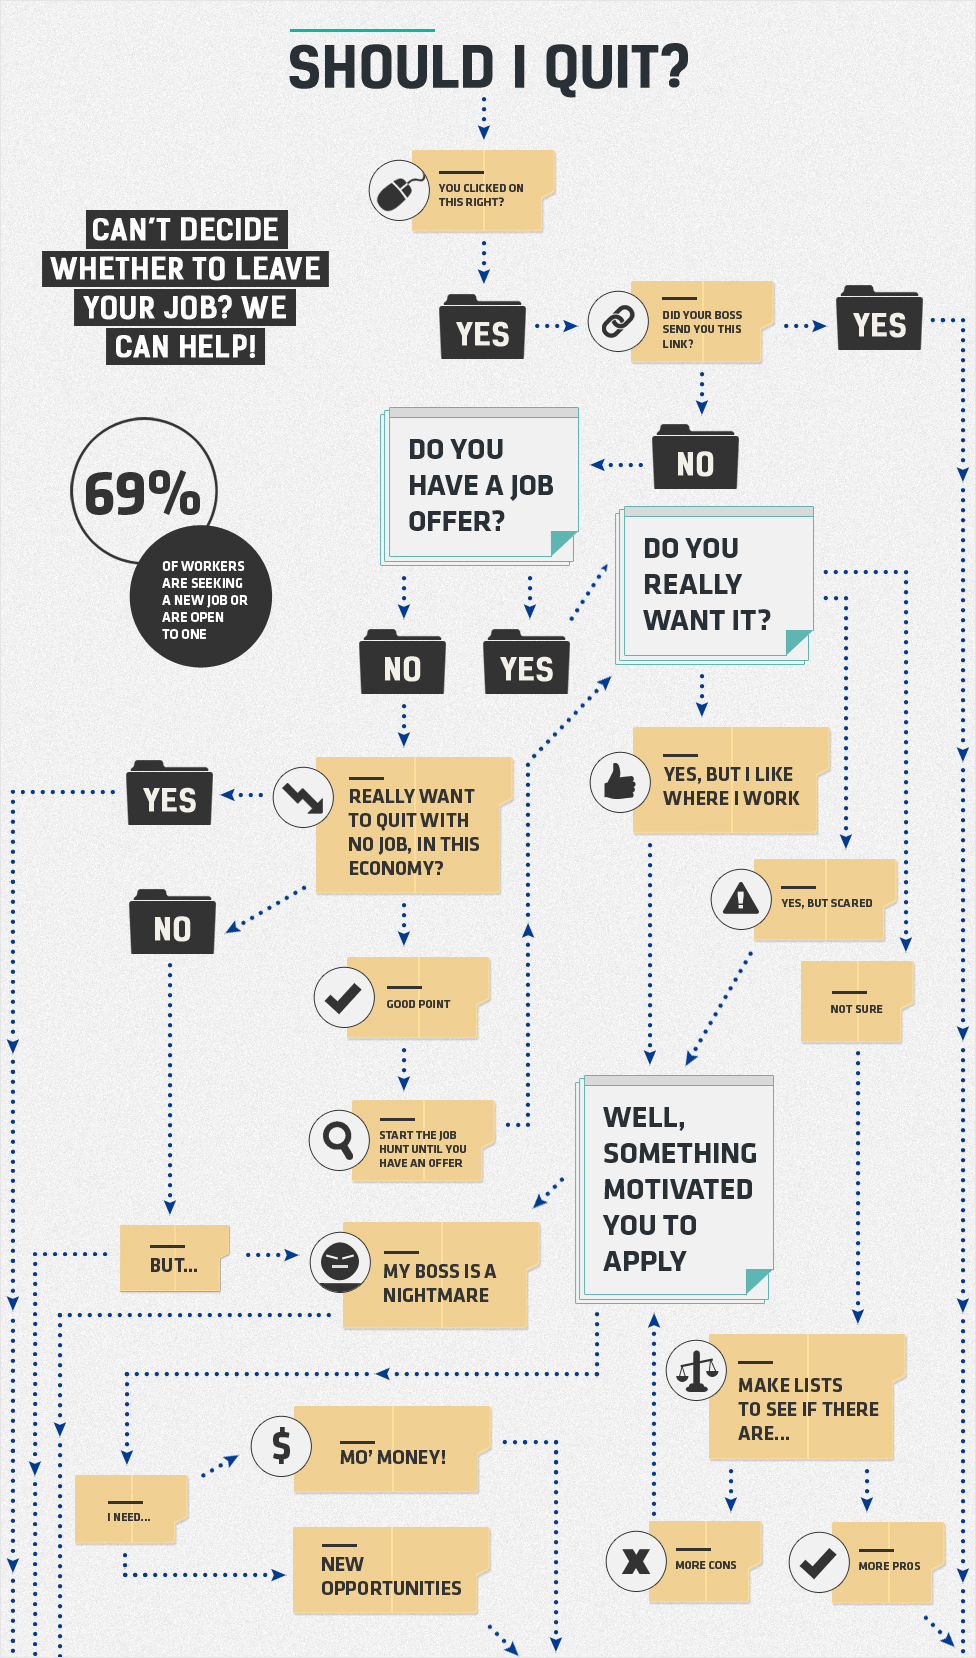 21-Creative-Flowchart-Examples-for-Making-Important-Life-Decisions-Incorporate-the-Subject-into-Images-Arrows